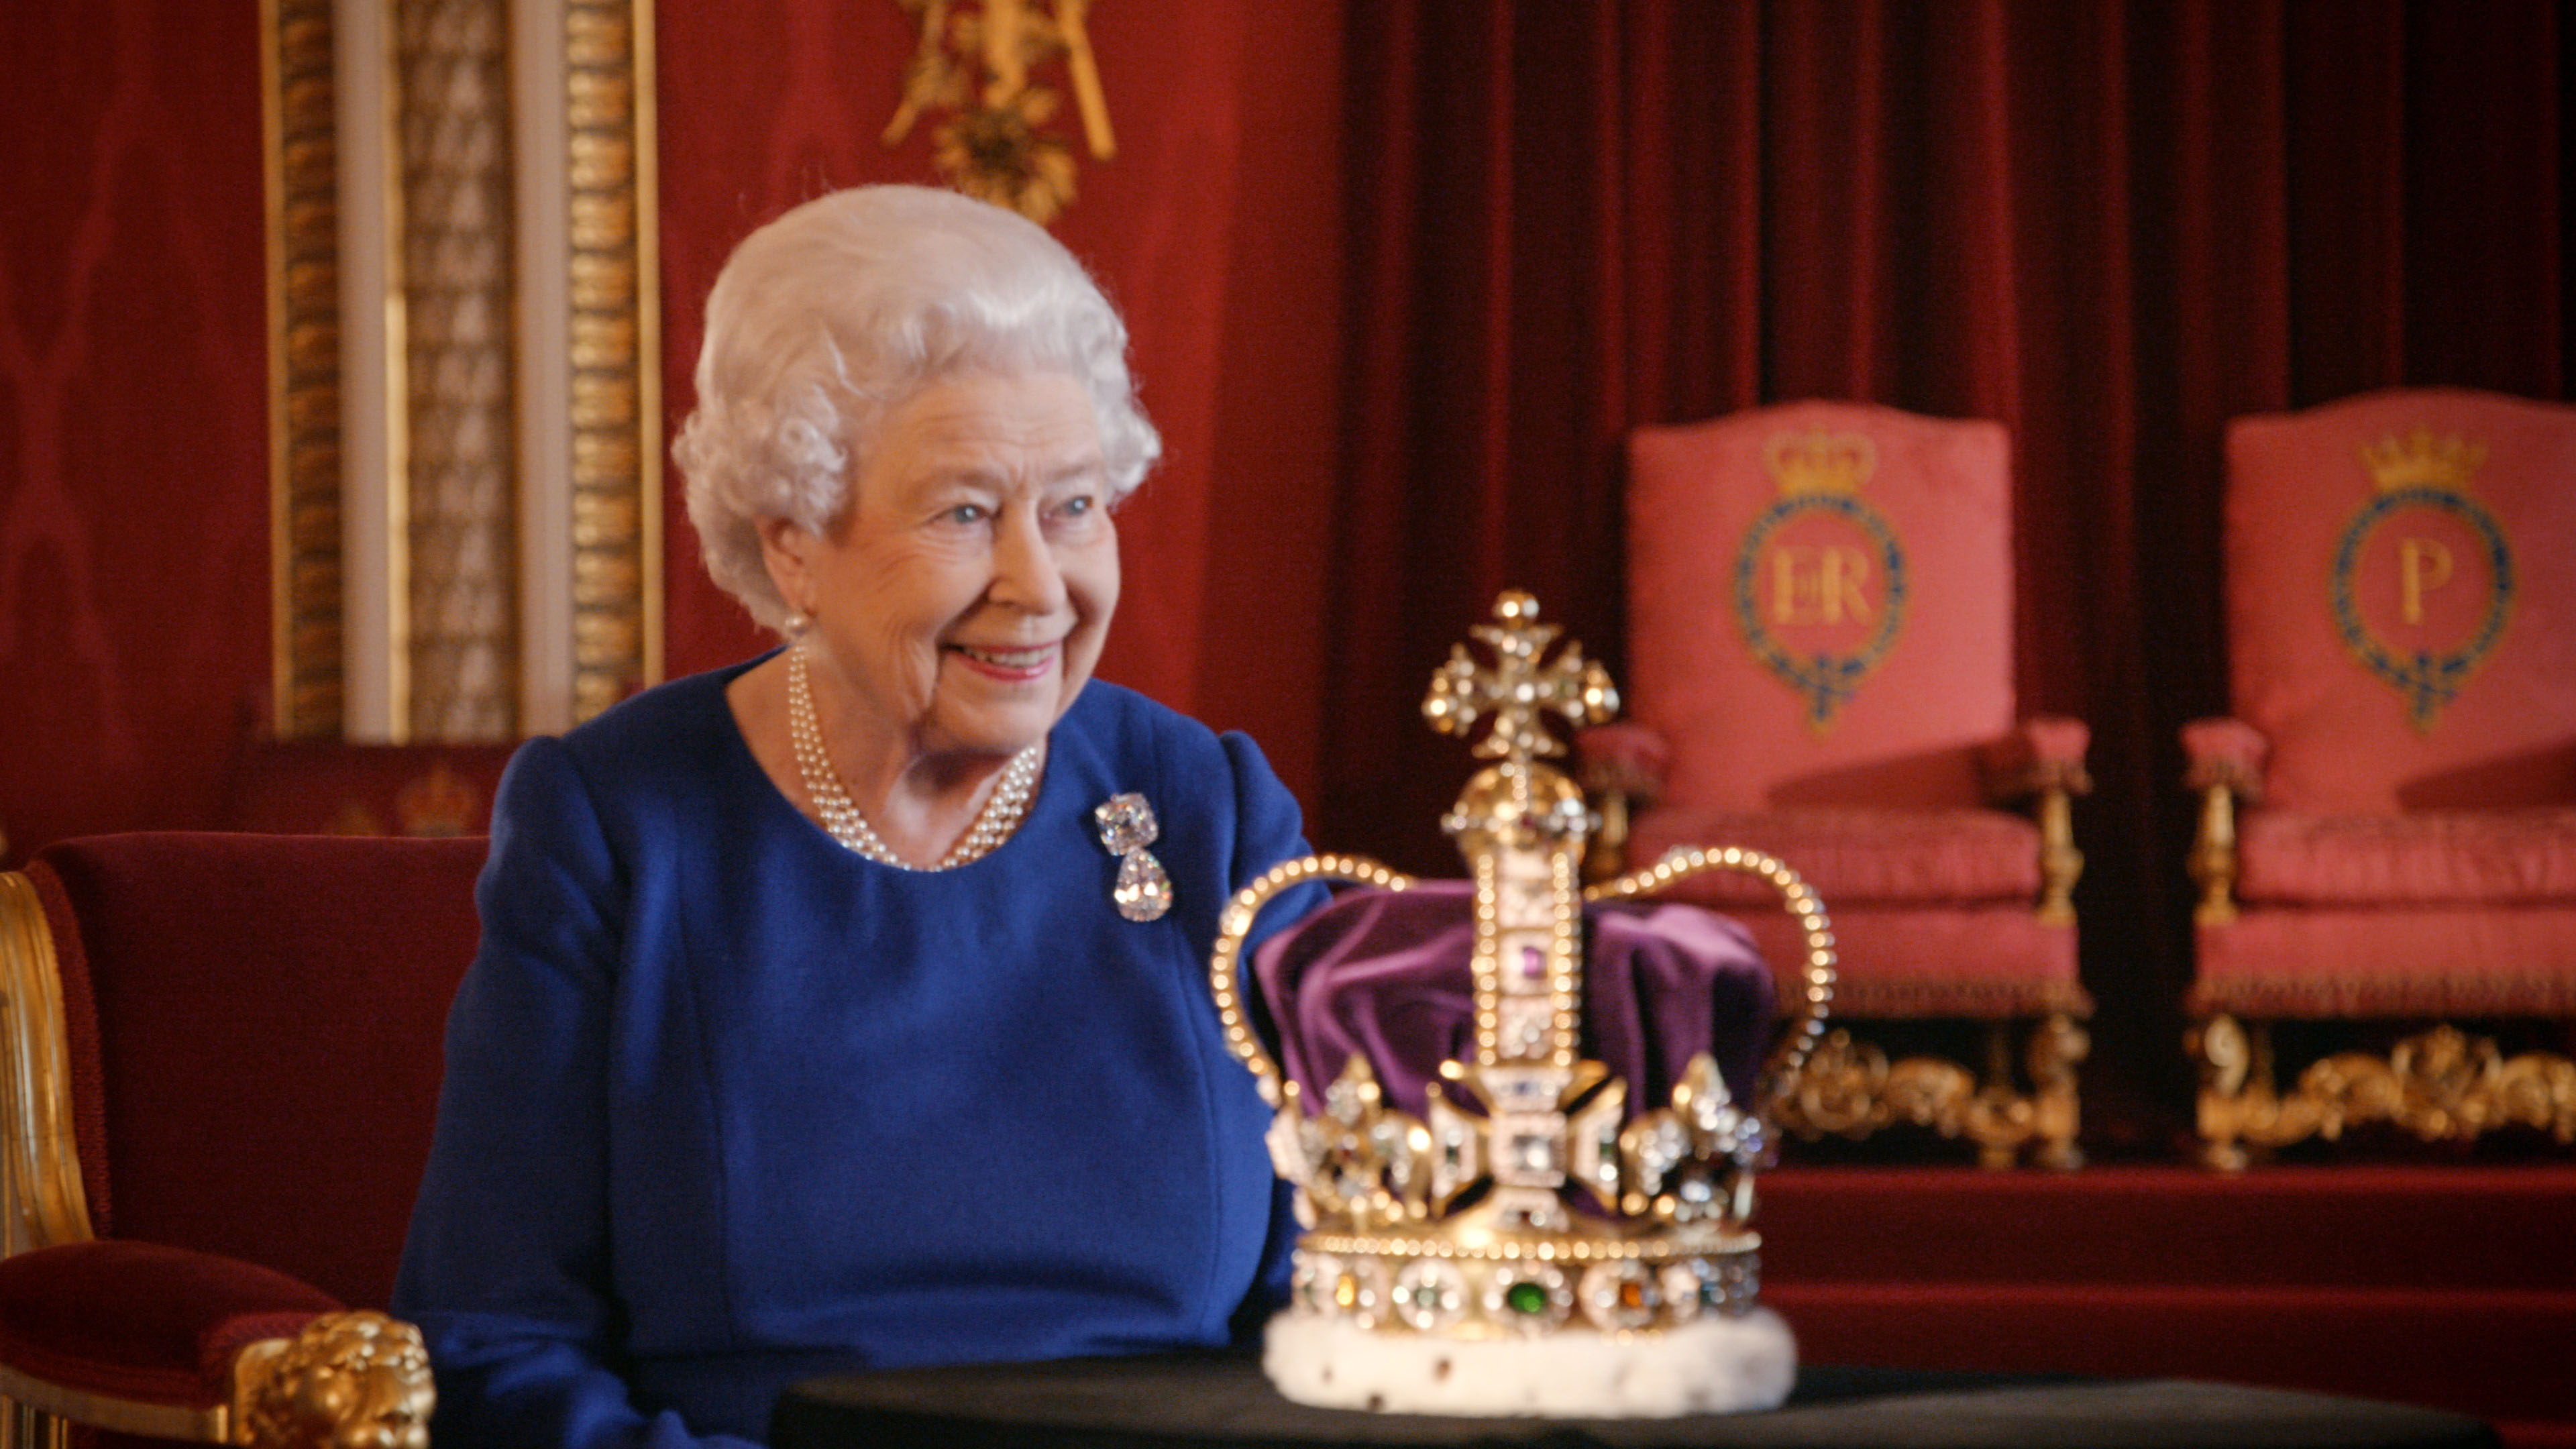 The Queen gives rare personal account of her coronation in BBC documentary